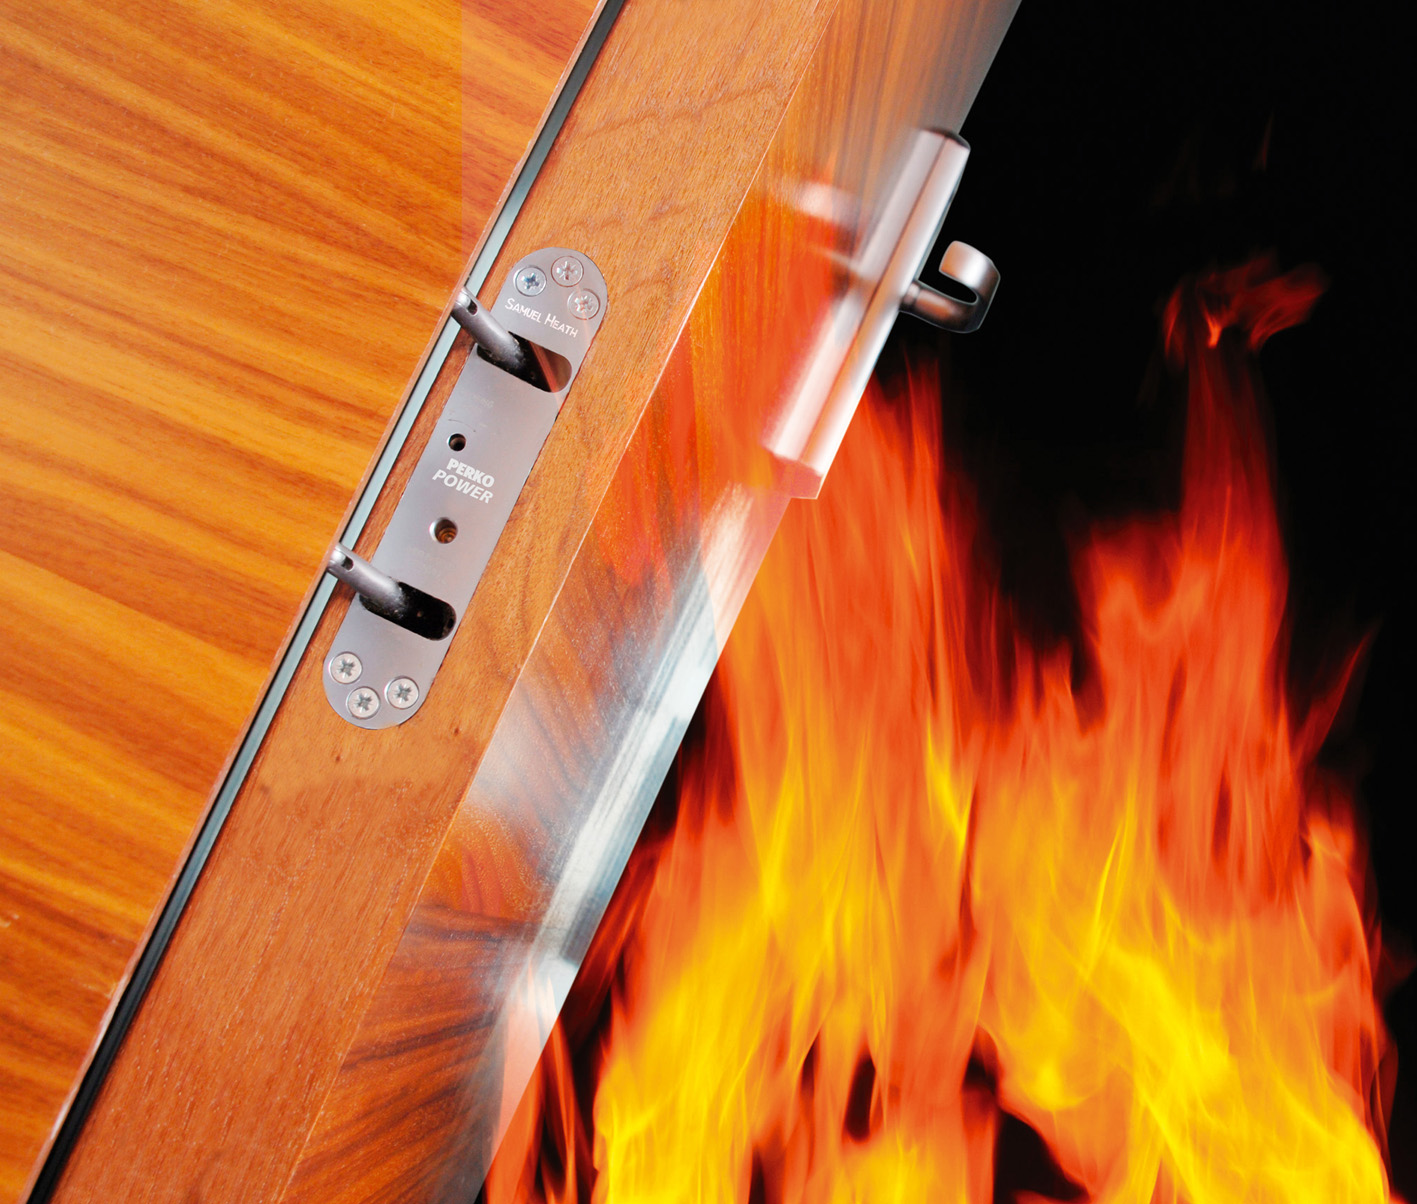 Fire Door Closers : New guidelines on fire door safety published show house